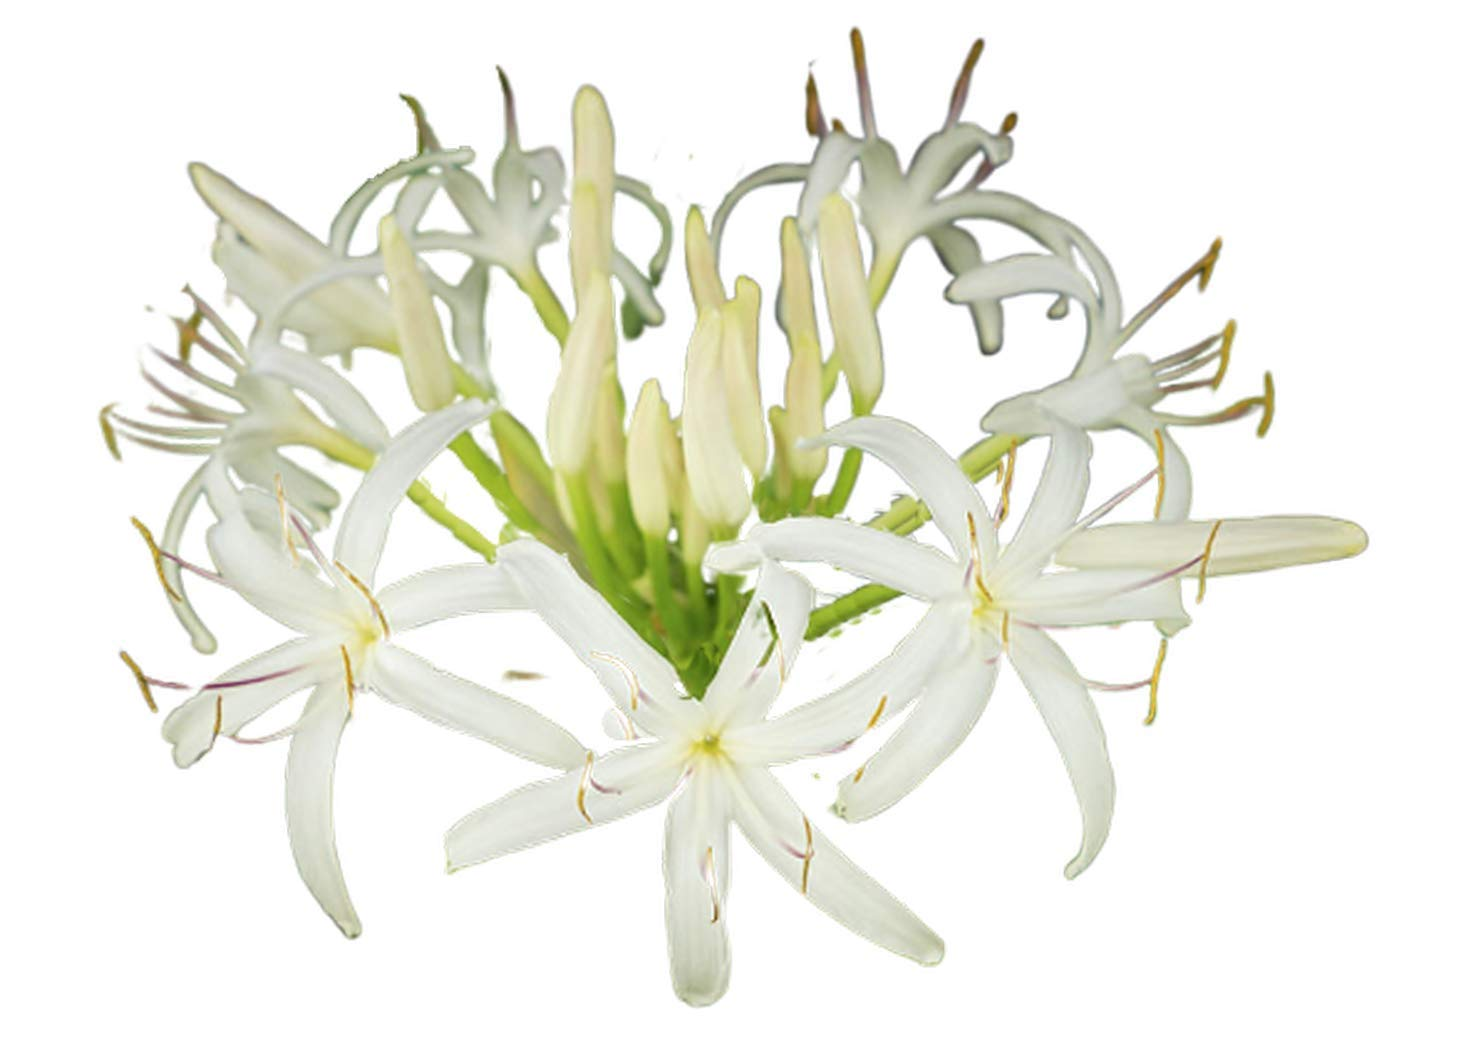 Spider Lily White Flower 4 Bulbs - Crinum Asiaticum Fresh Beauty Spider Plant, Exotic Lycoris Albiflora Perennial Lilies, Summer Flower Bulbs for Garden Decor by Mabes Warehouse